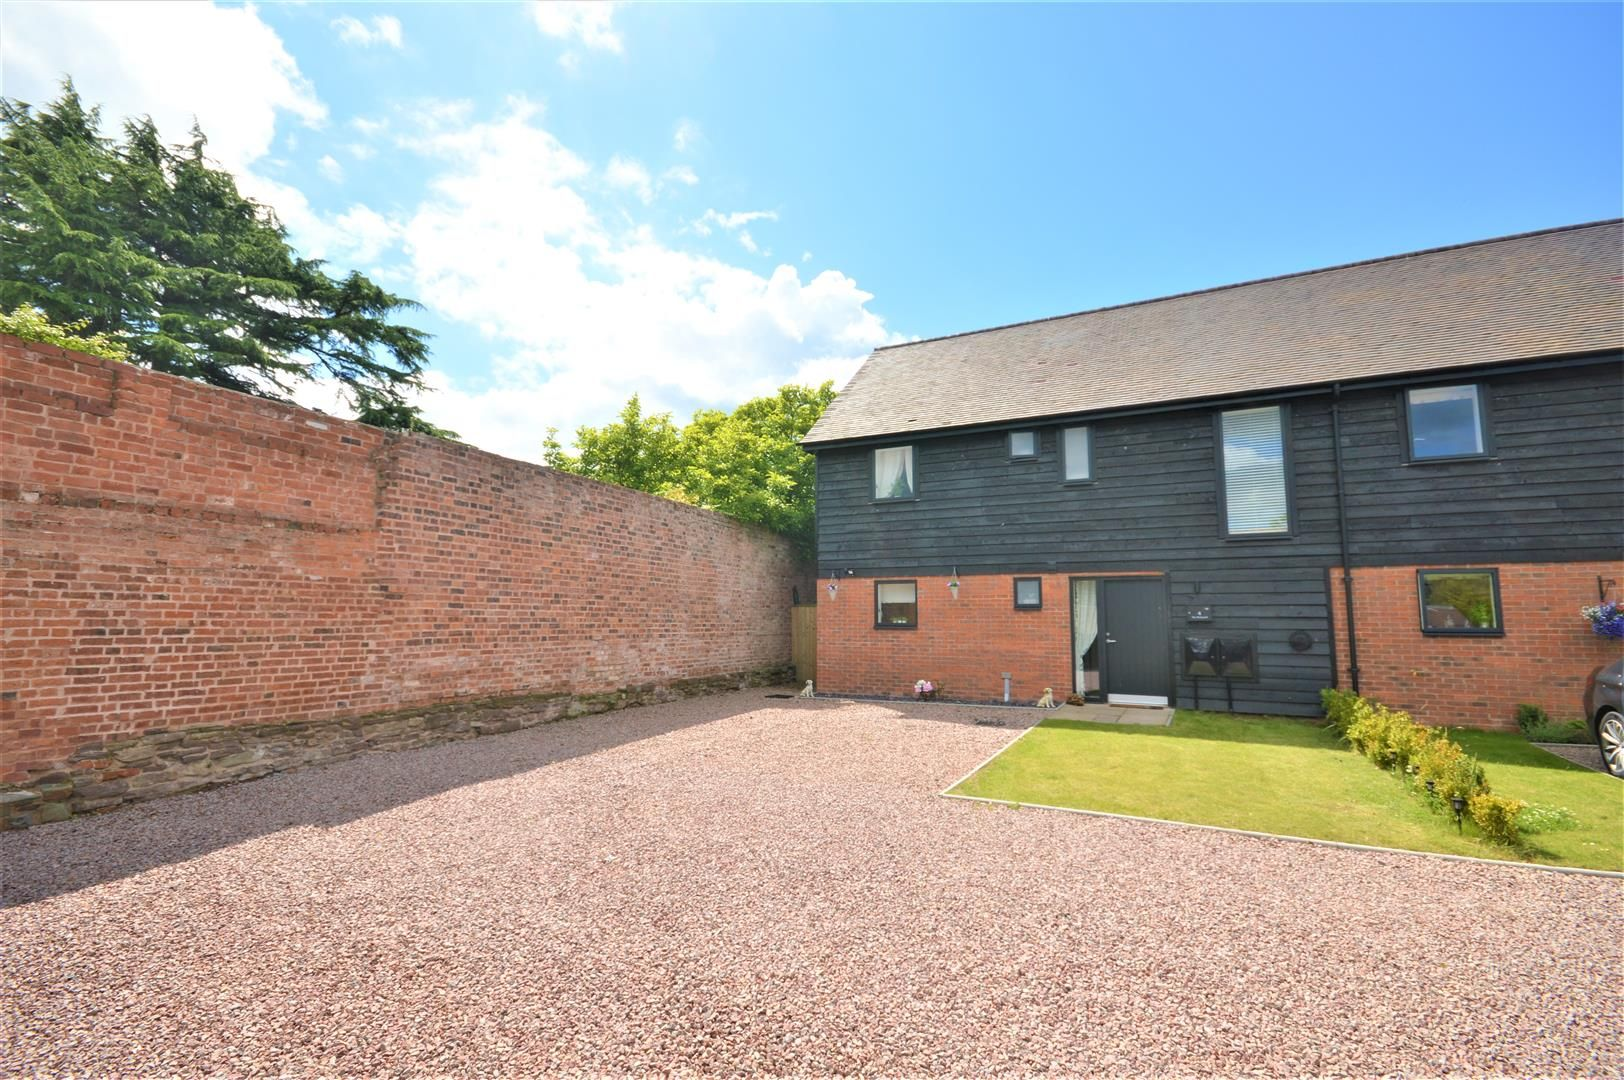 3 bed end of terrace for sale in Wellington, HR4